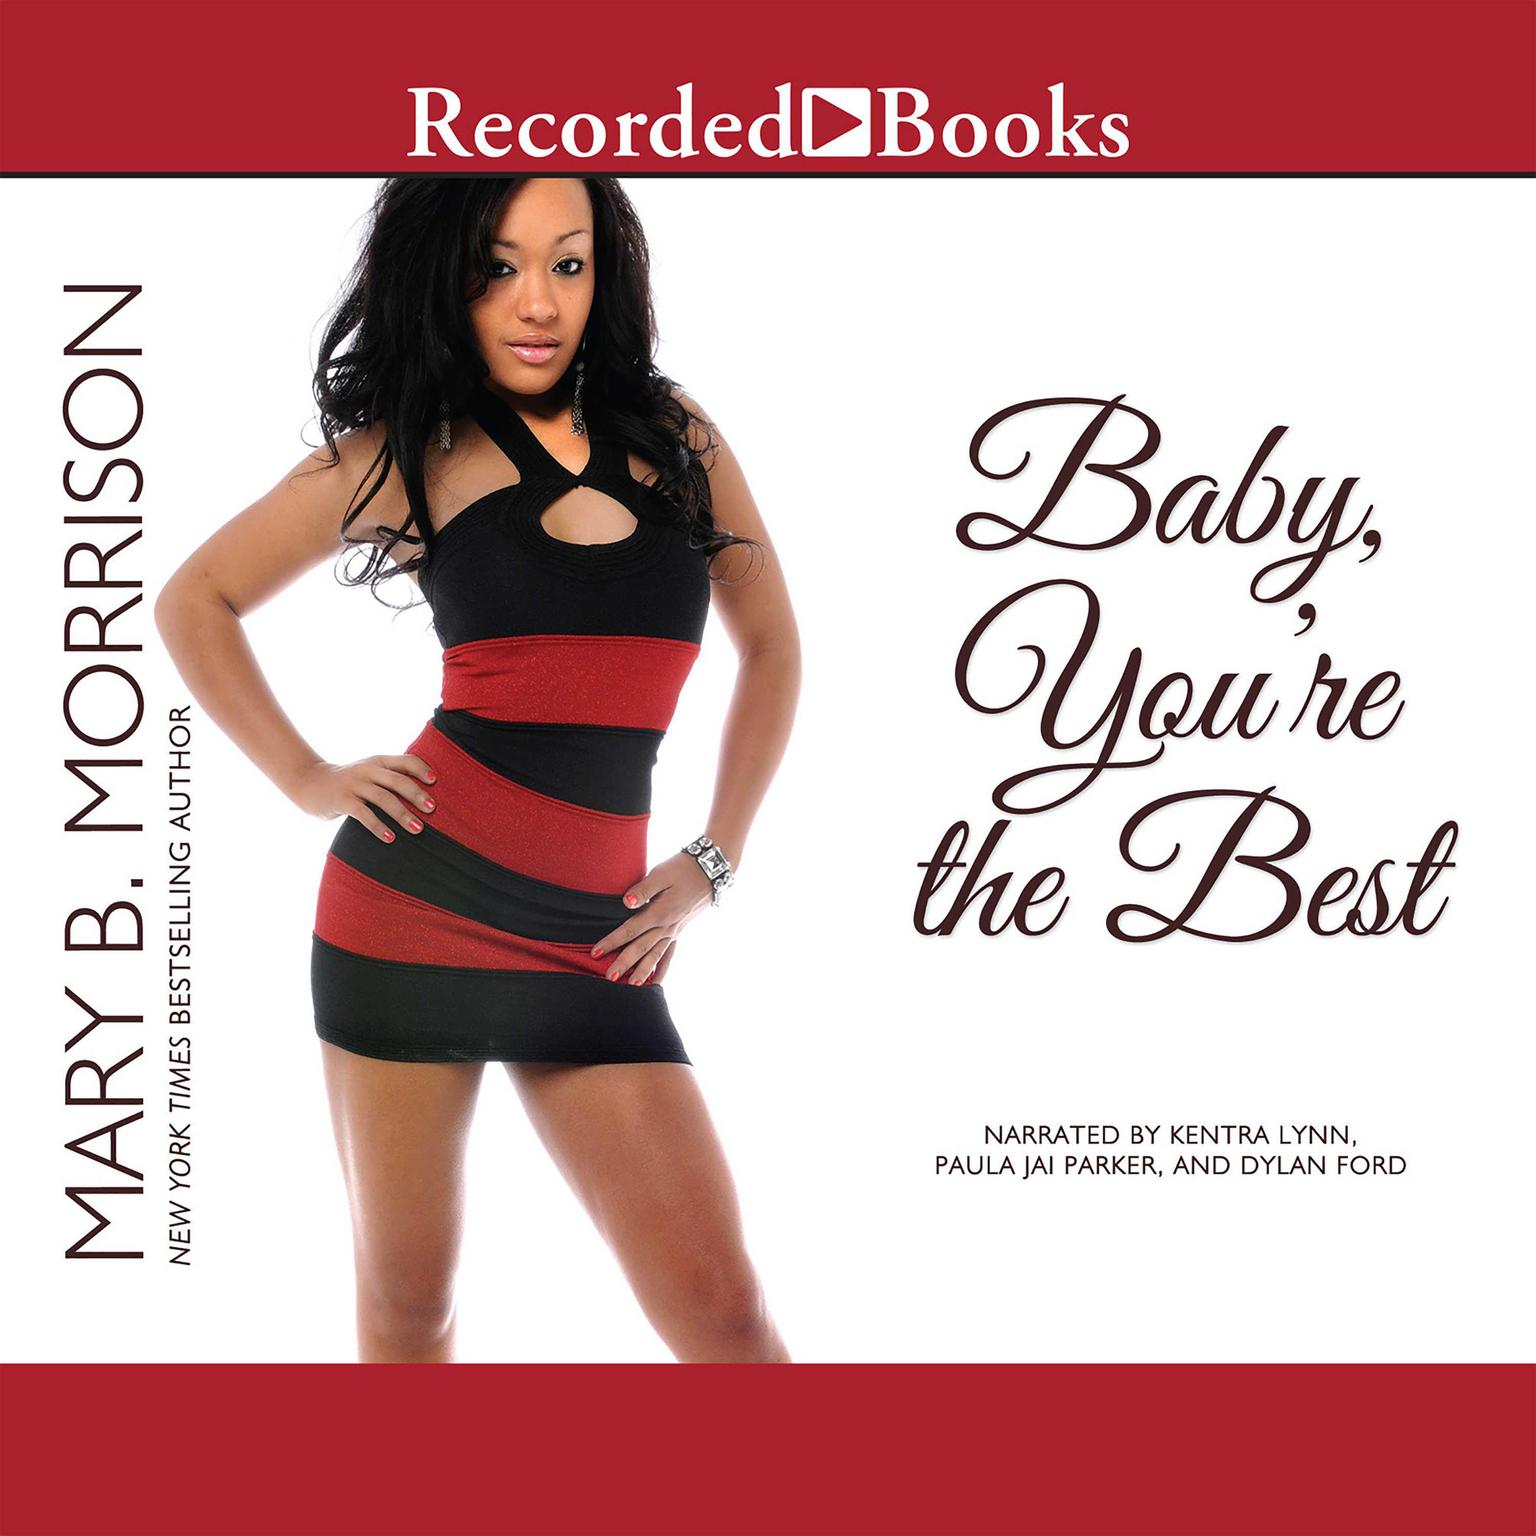 Baby, Youre the Best Audiobook, by Mary B. Morrison